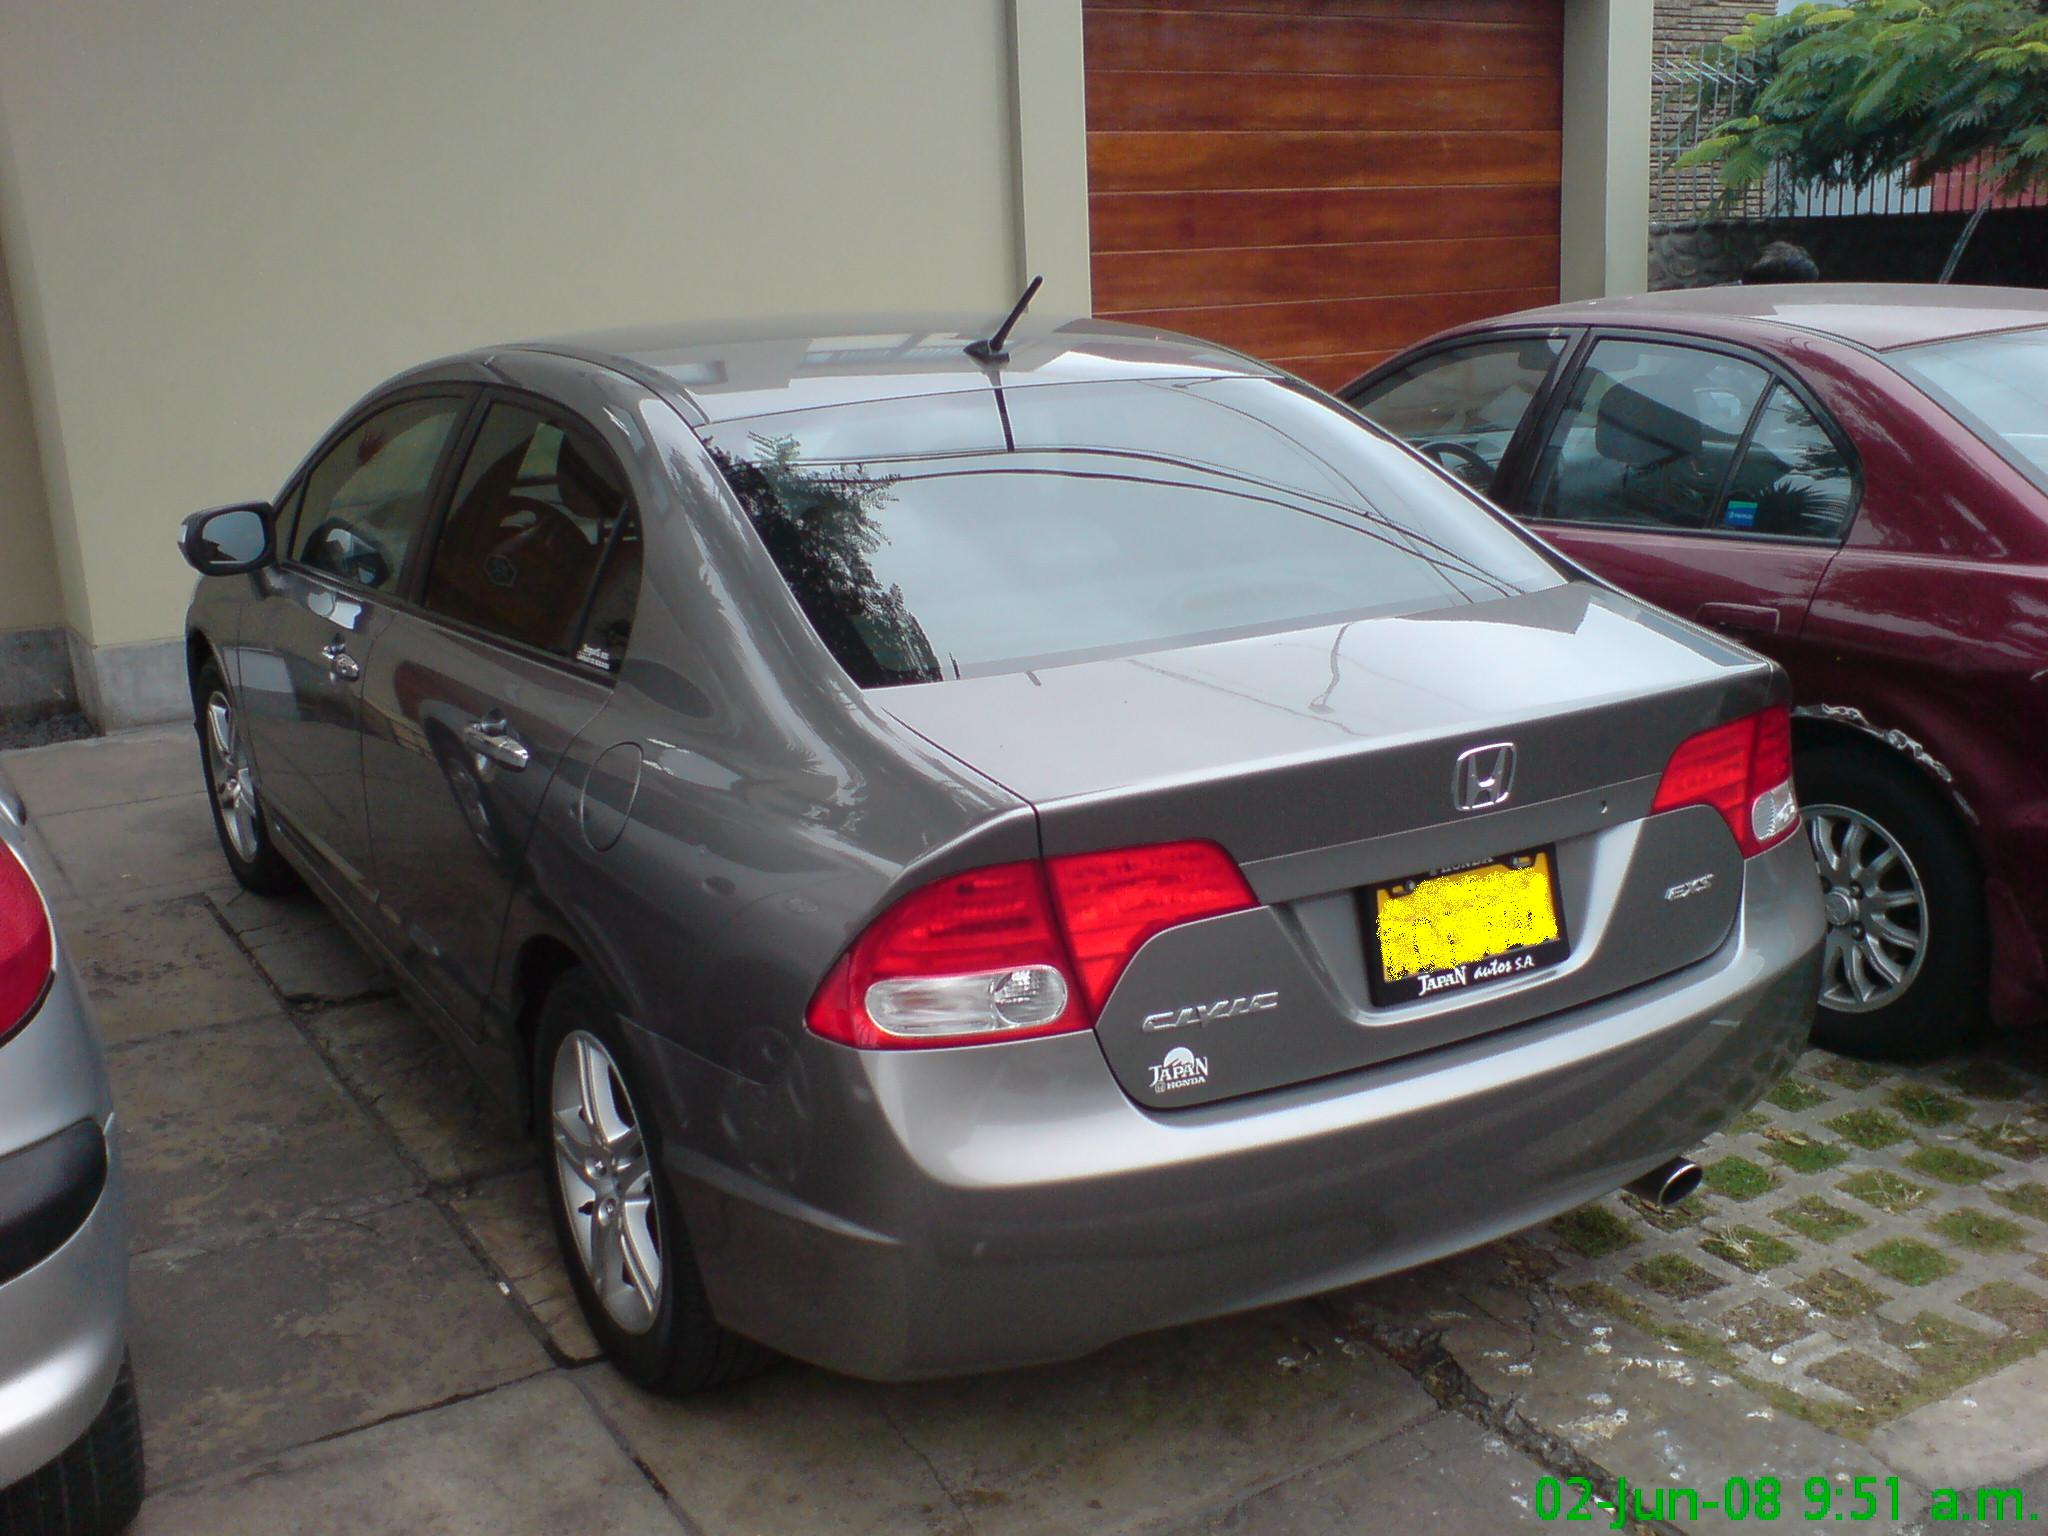 Honda Civic 1.5 2006 photo - 2